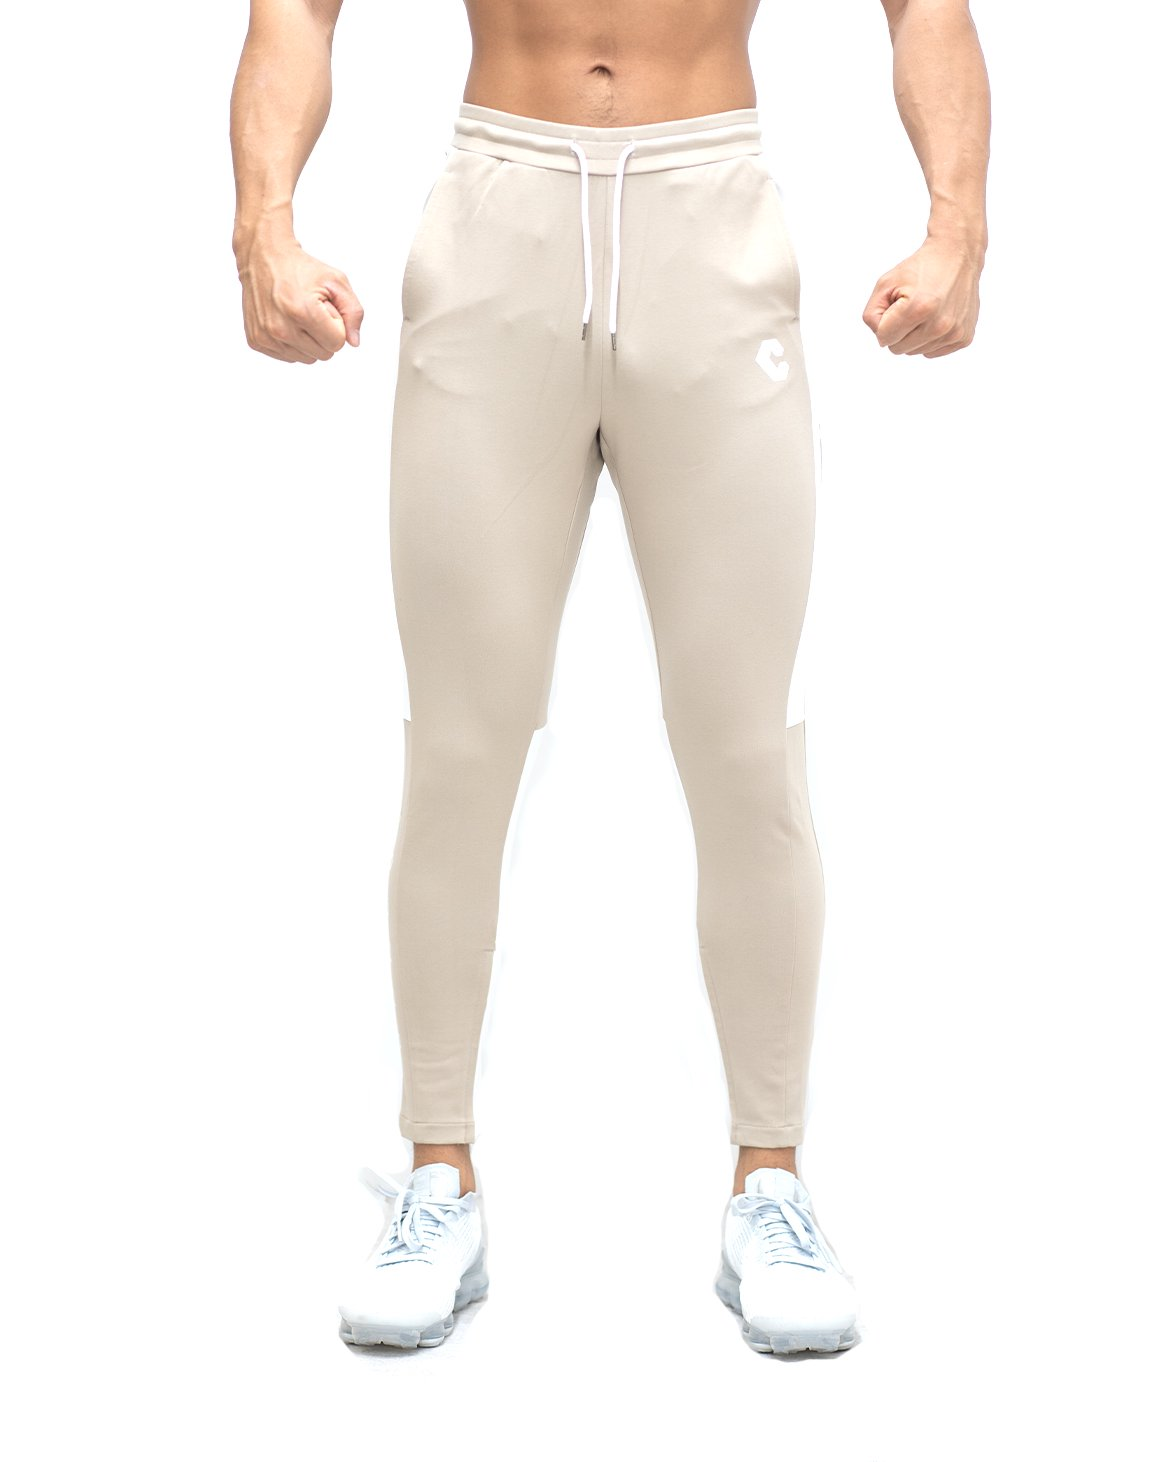 <img class='new_mark_img1' src='https://img.shop-pro.jp/img/new/icons1.gif' style='border:none;display:inline;margin:0px;padding:0px;width:auto;' />CRONOS SIDE HALF LINE PANTS 【BEIGE】